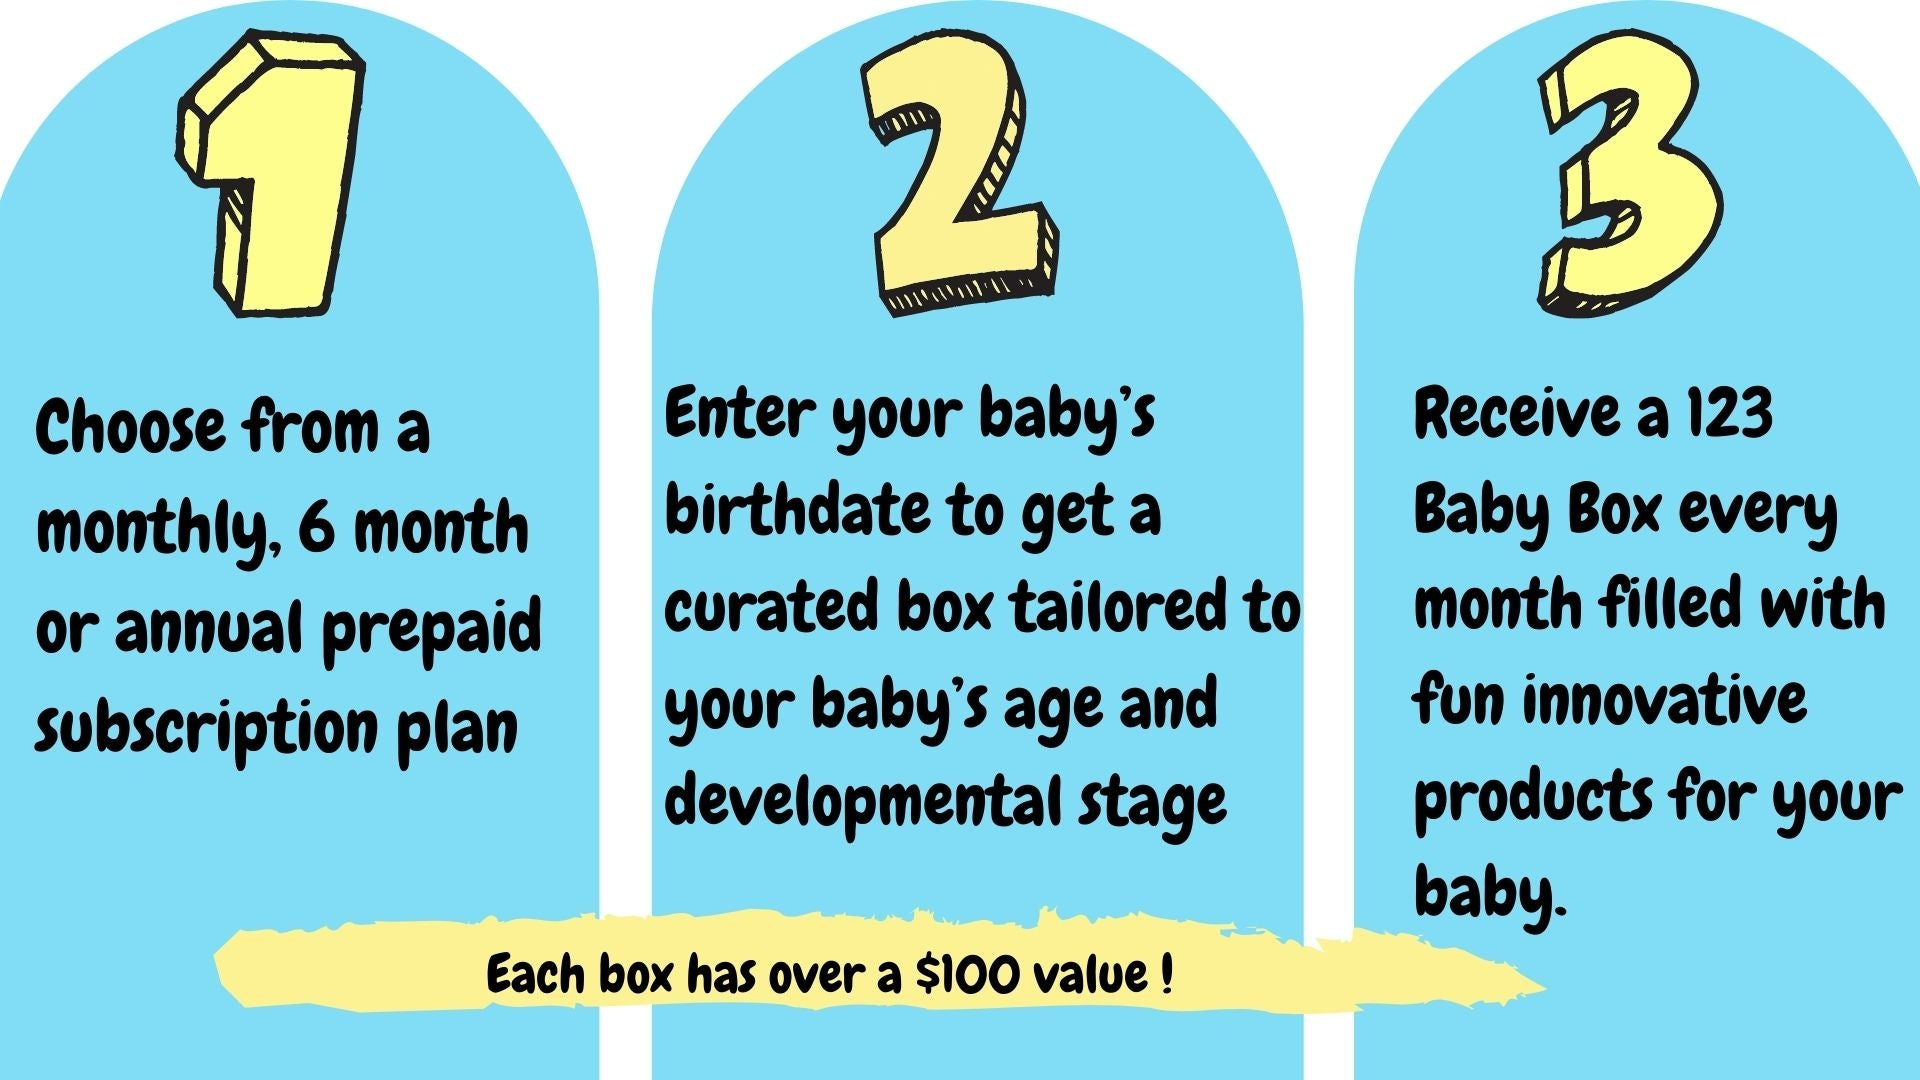 How it Works 123 Baby Box